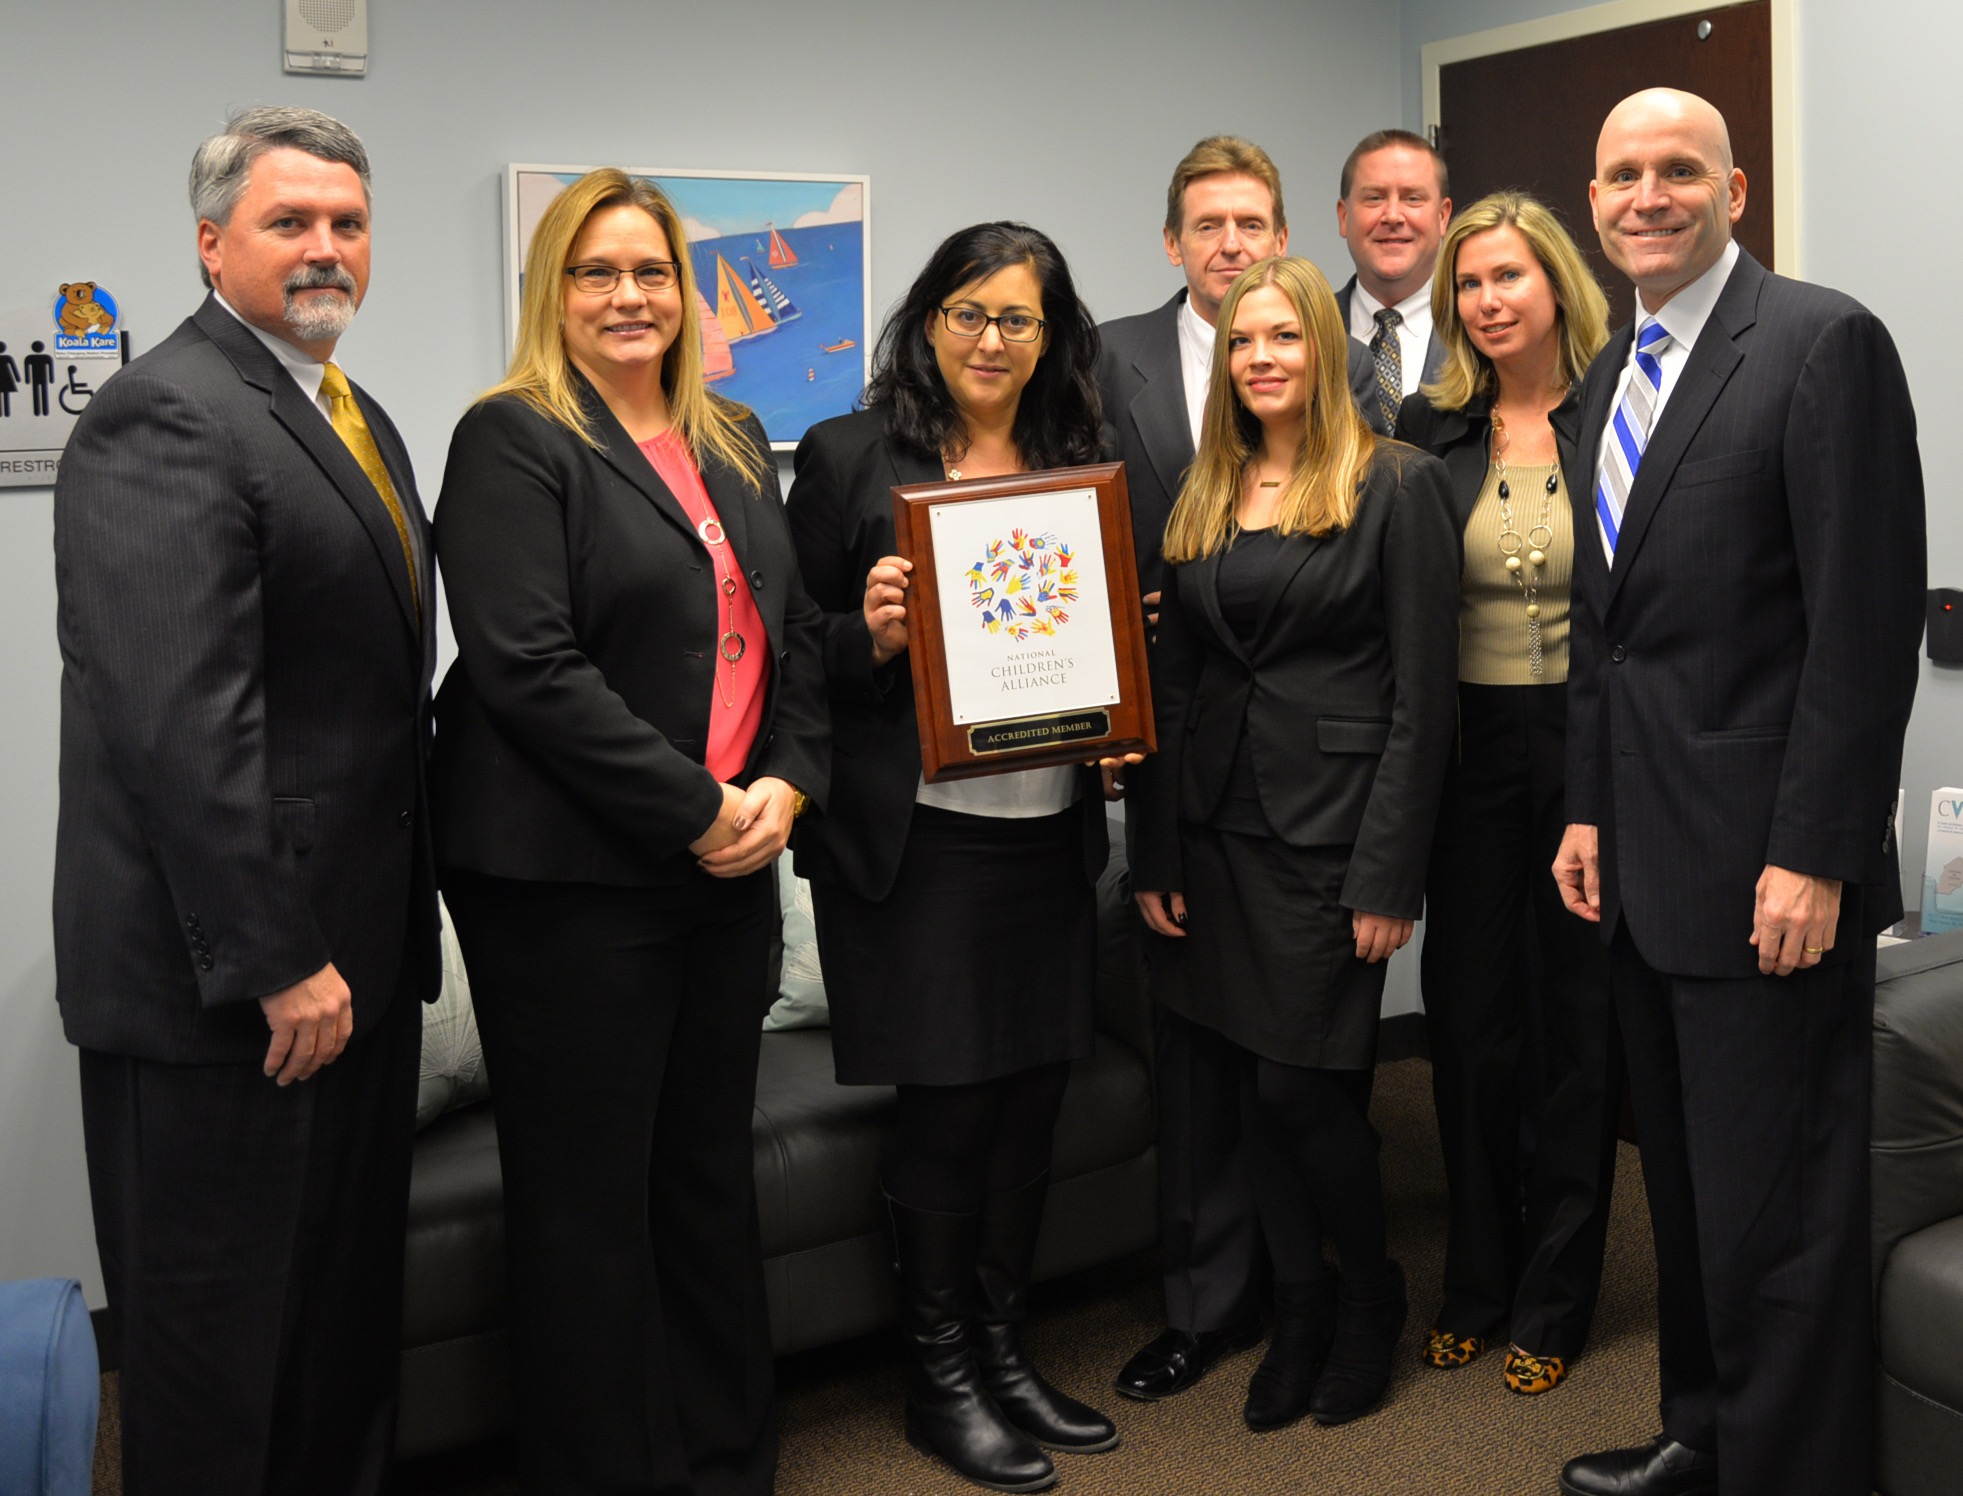 Child Advocacy Center earns reaccreditation  Chadds Ford Live